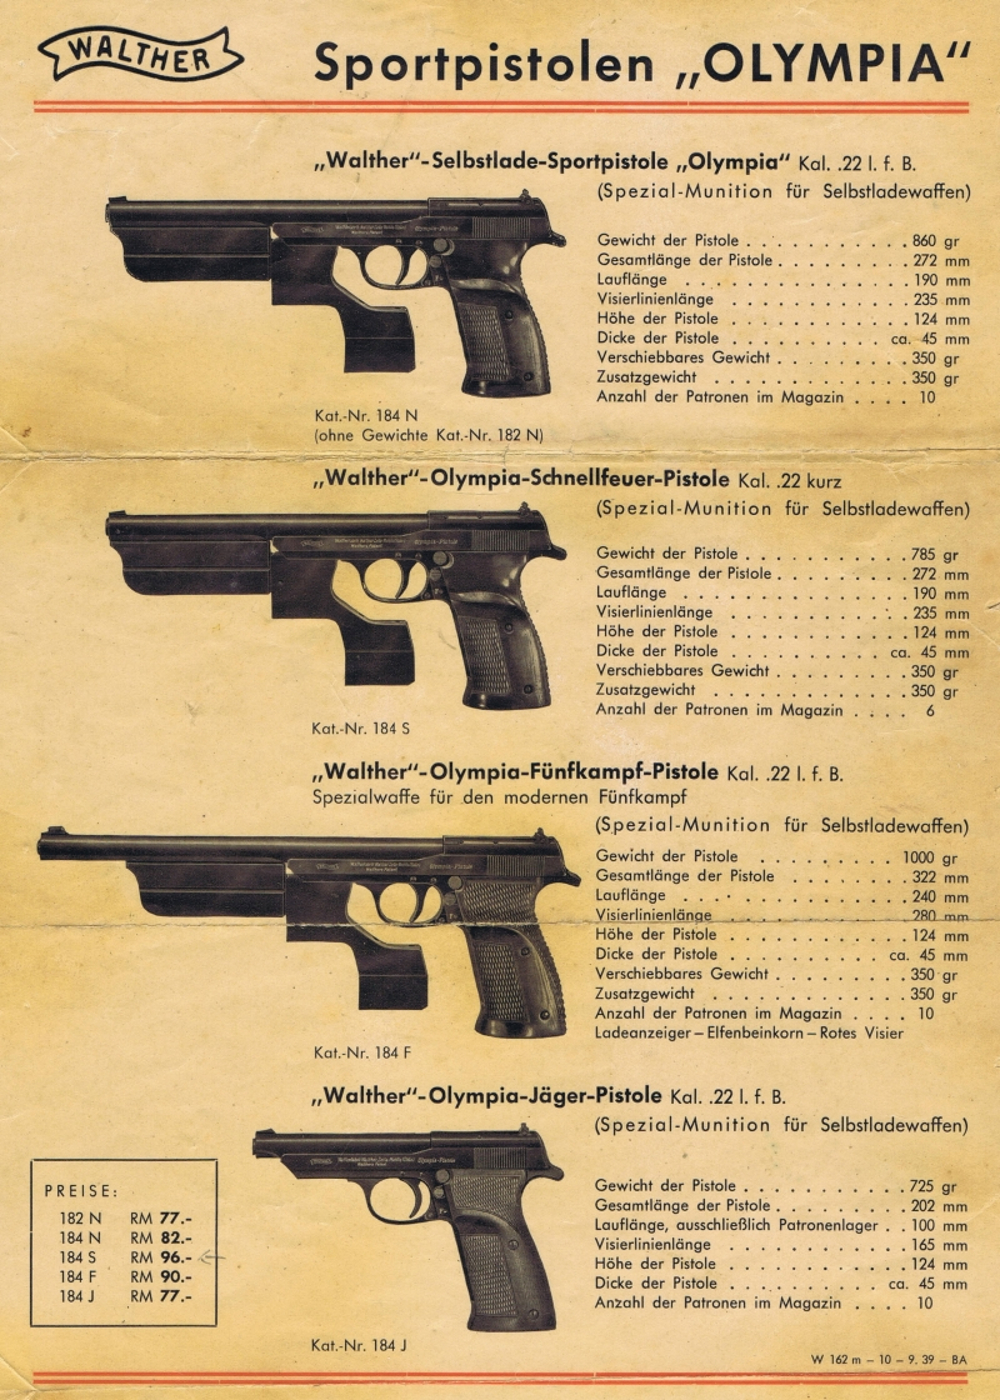 Walther 1936 Olympia Pistol advertisement